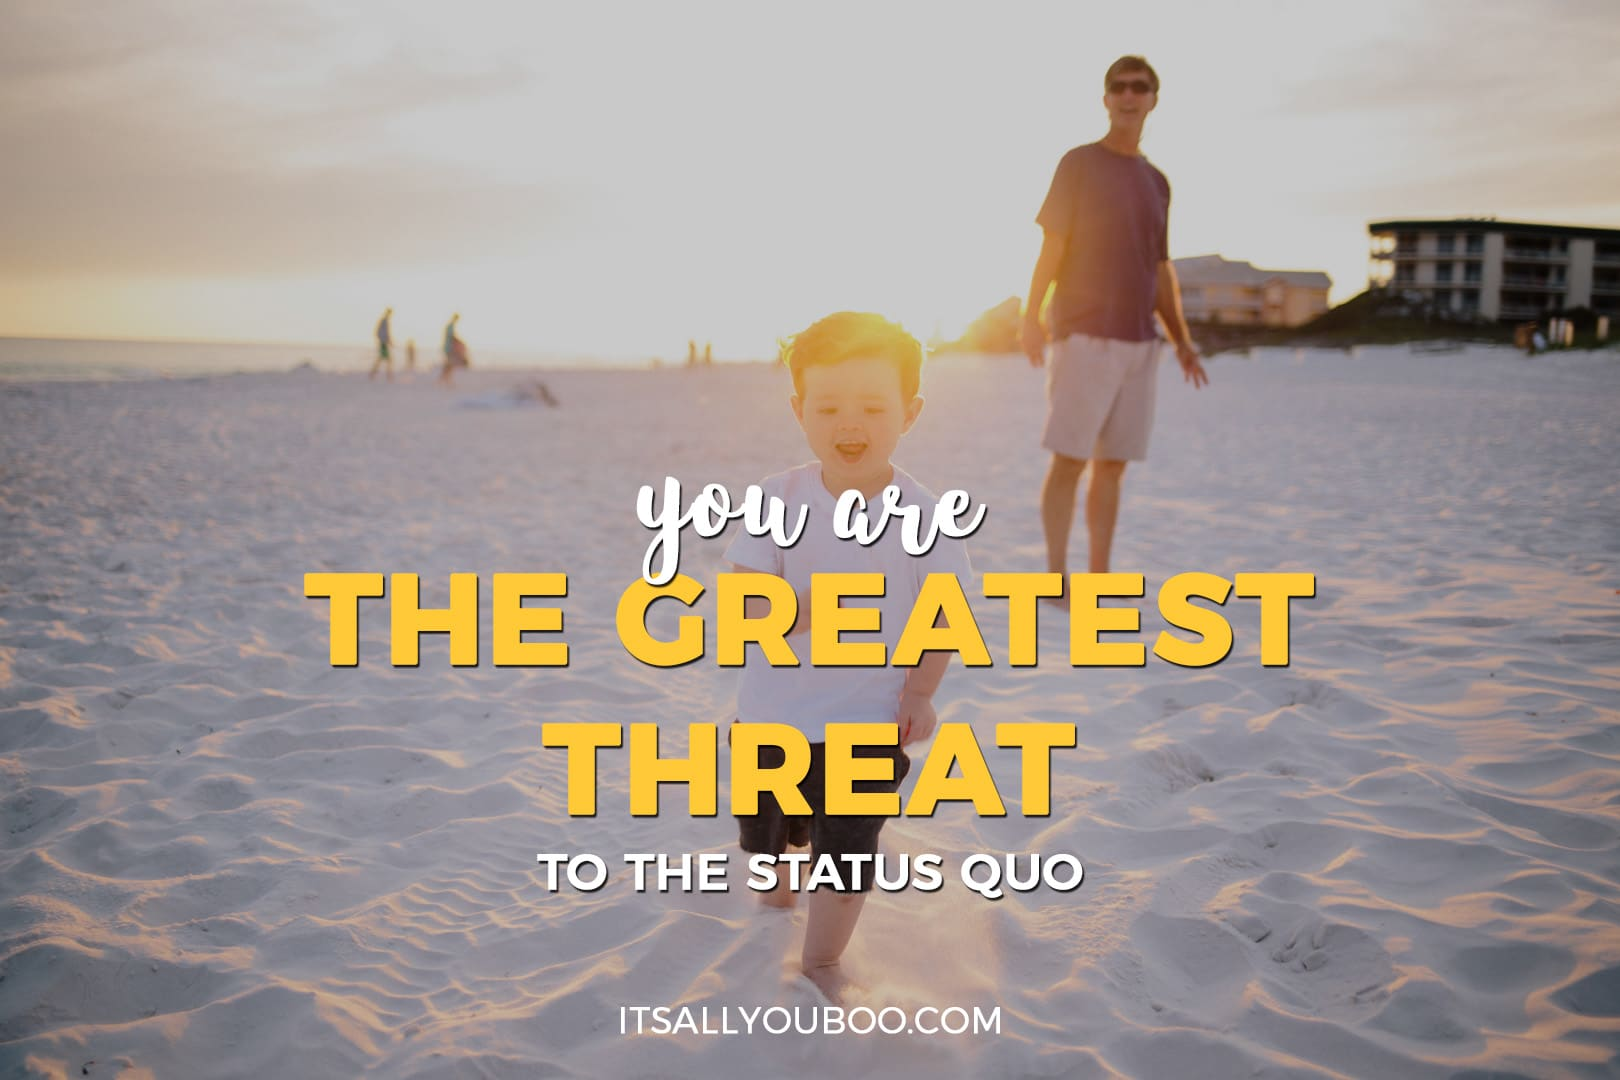 """photo of a child running on the beach with the words """"you are the greatest threat the the status quo"""" written"""